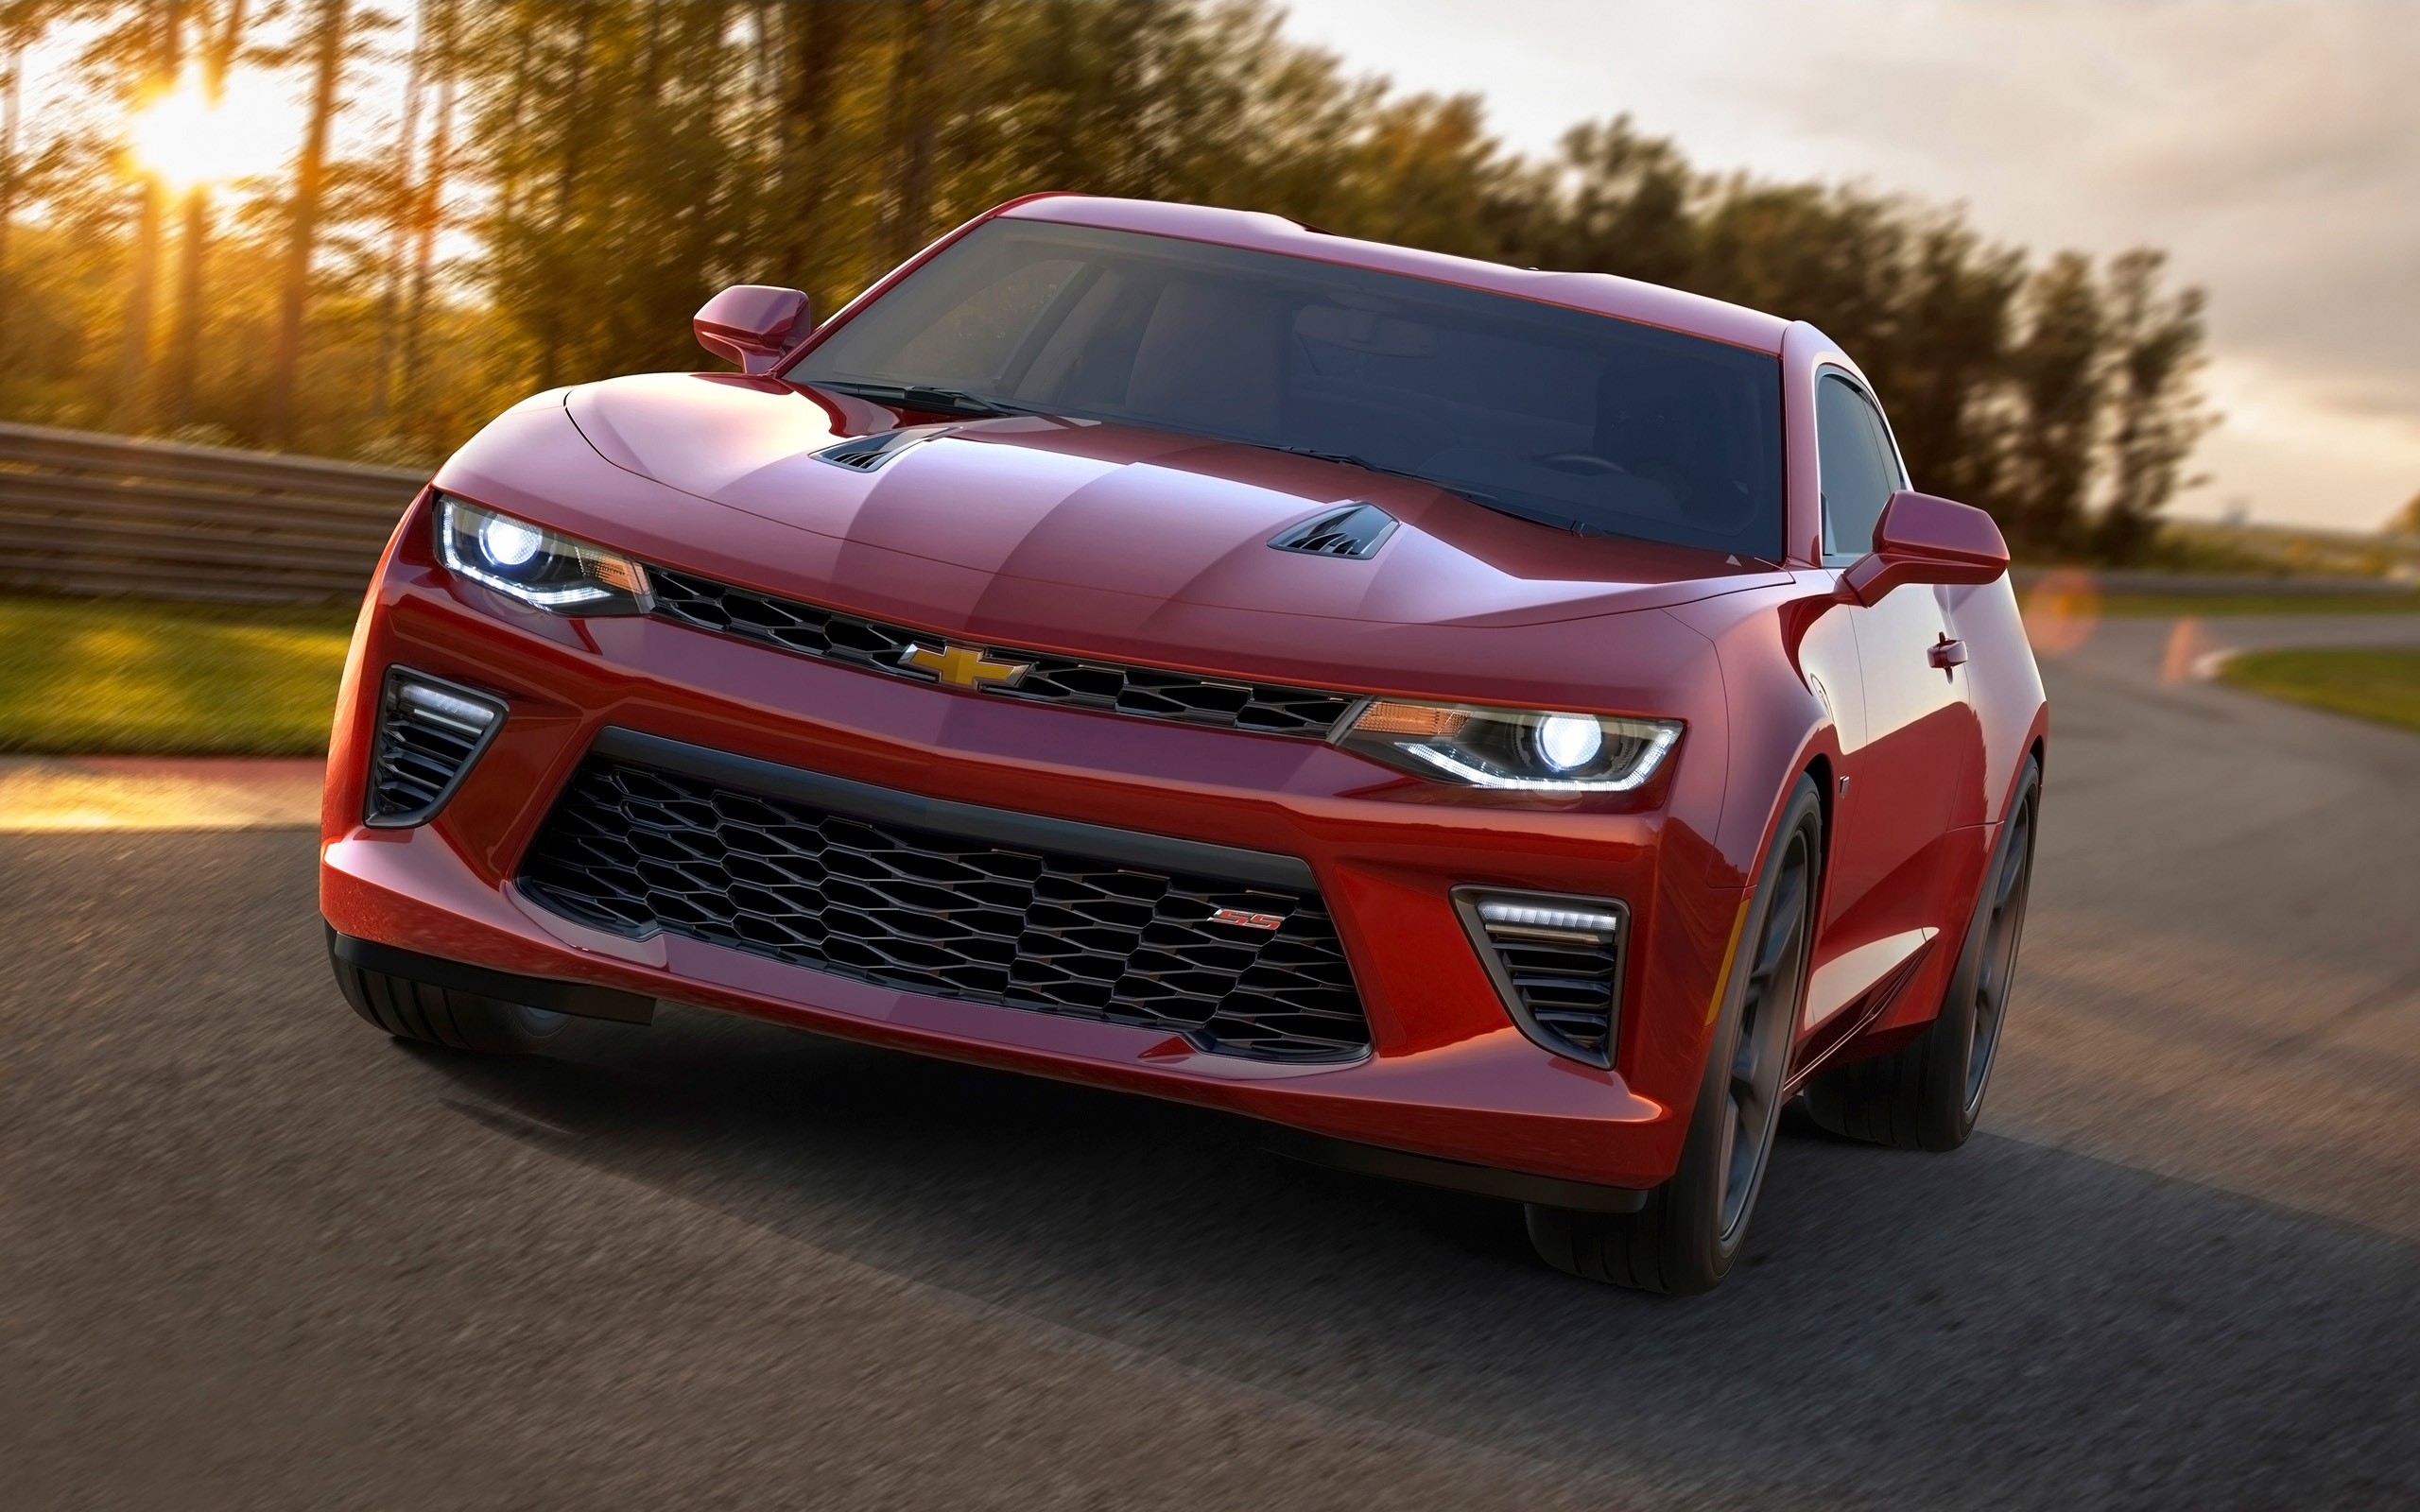 2016 Chevrolet Camaro SS Wallpapers HD Wallpapers 2560x1600